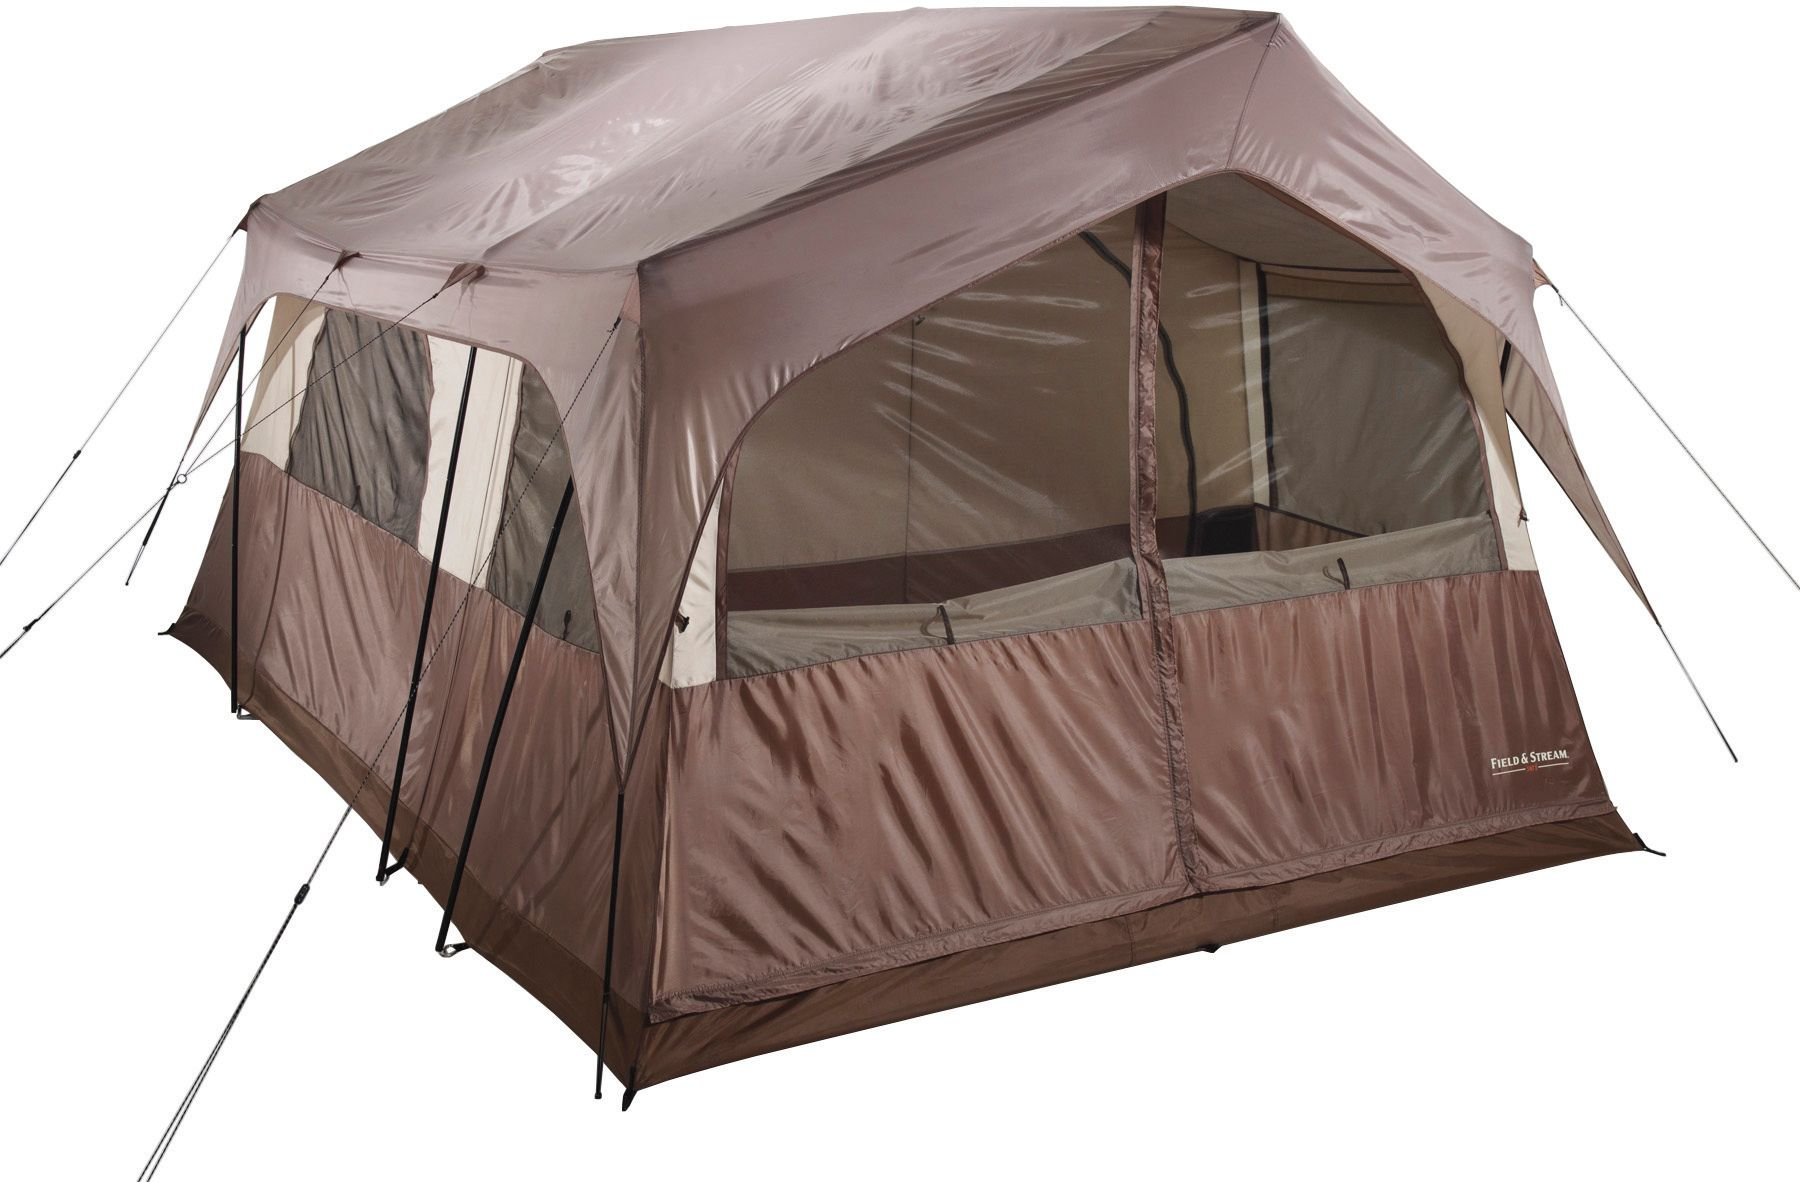 Anyway apparently a few people actually got the tent for $30 instead of $200!!  sc 1 st  Acoustic Alchemy & Acoustic Alchemy: Camp Master Lagoona Diner Cabin 5 person tent ...